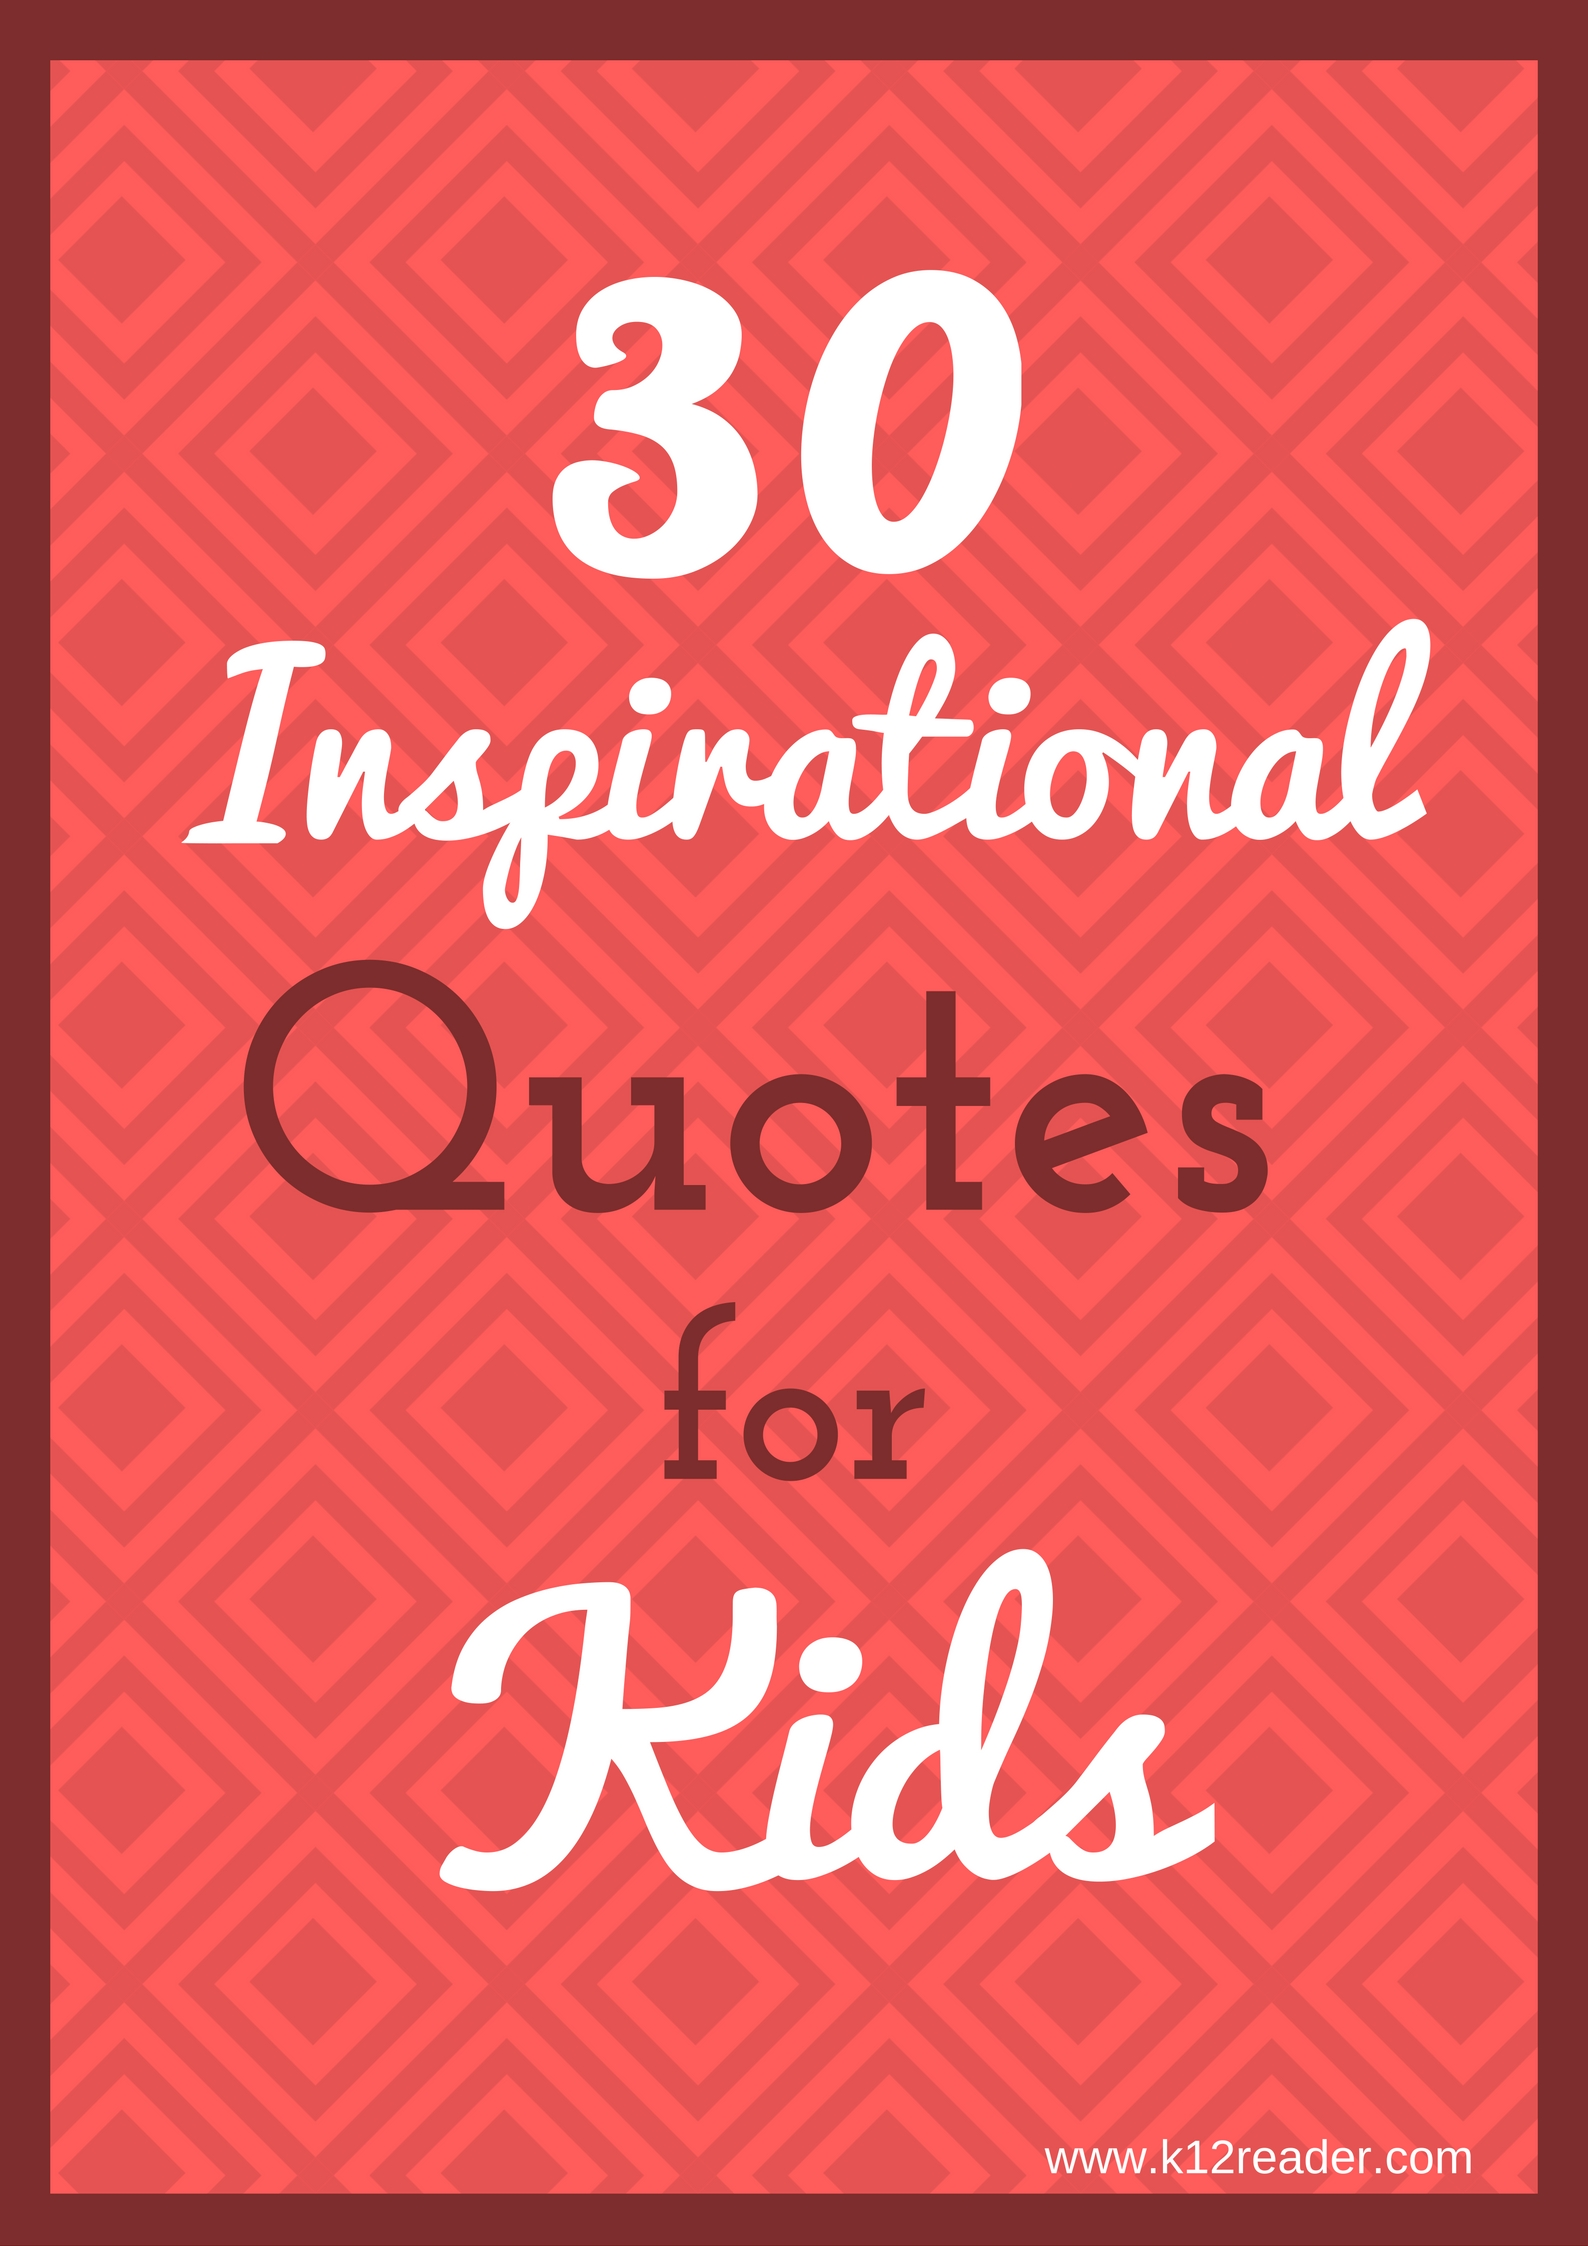 6th Grade Classroom Decorating Ideas ~ Inspirational quotes for kids